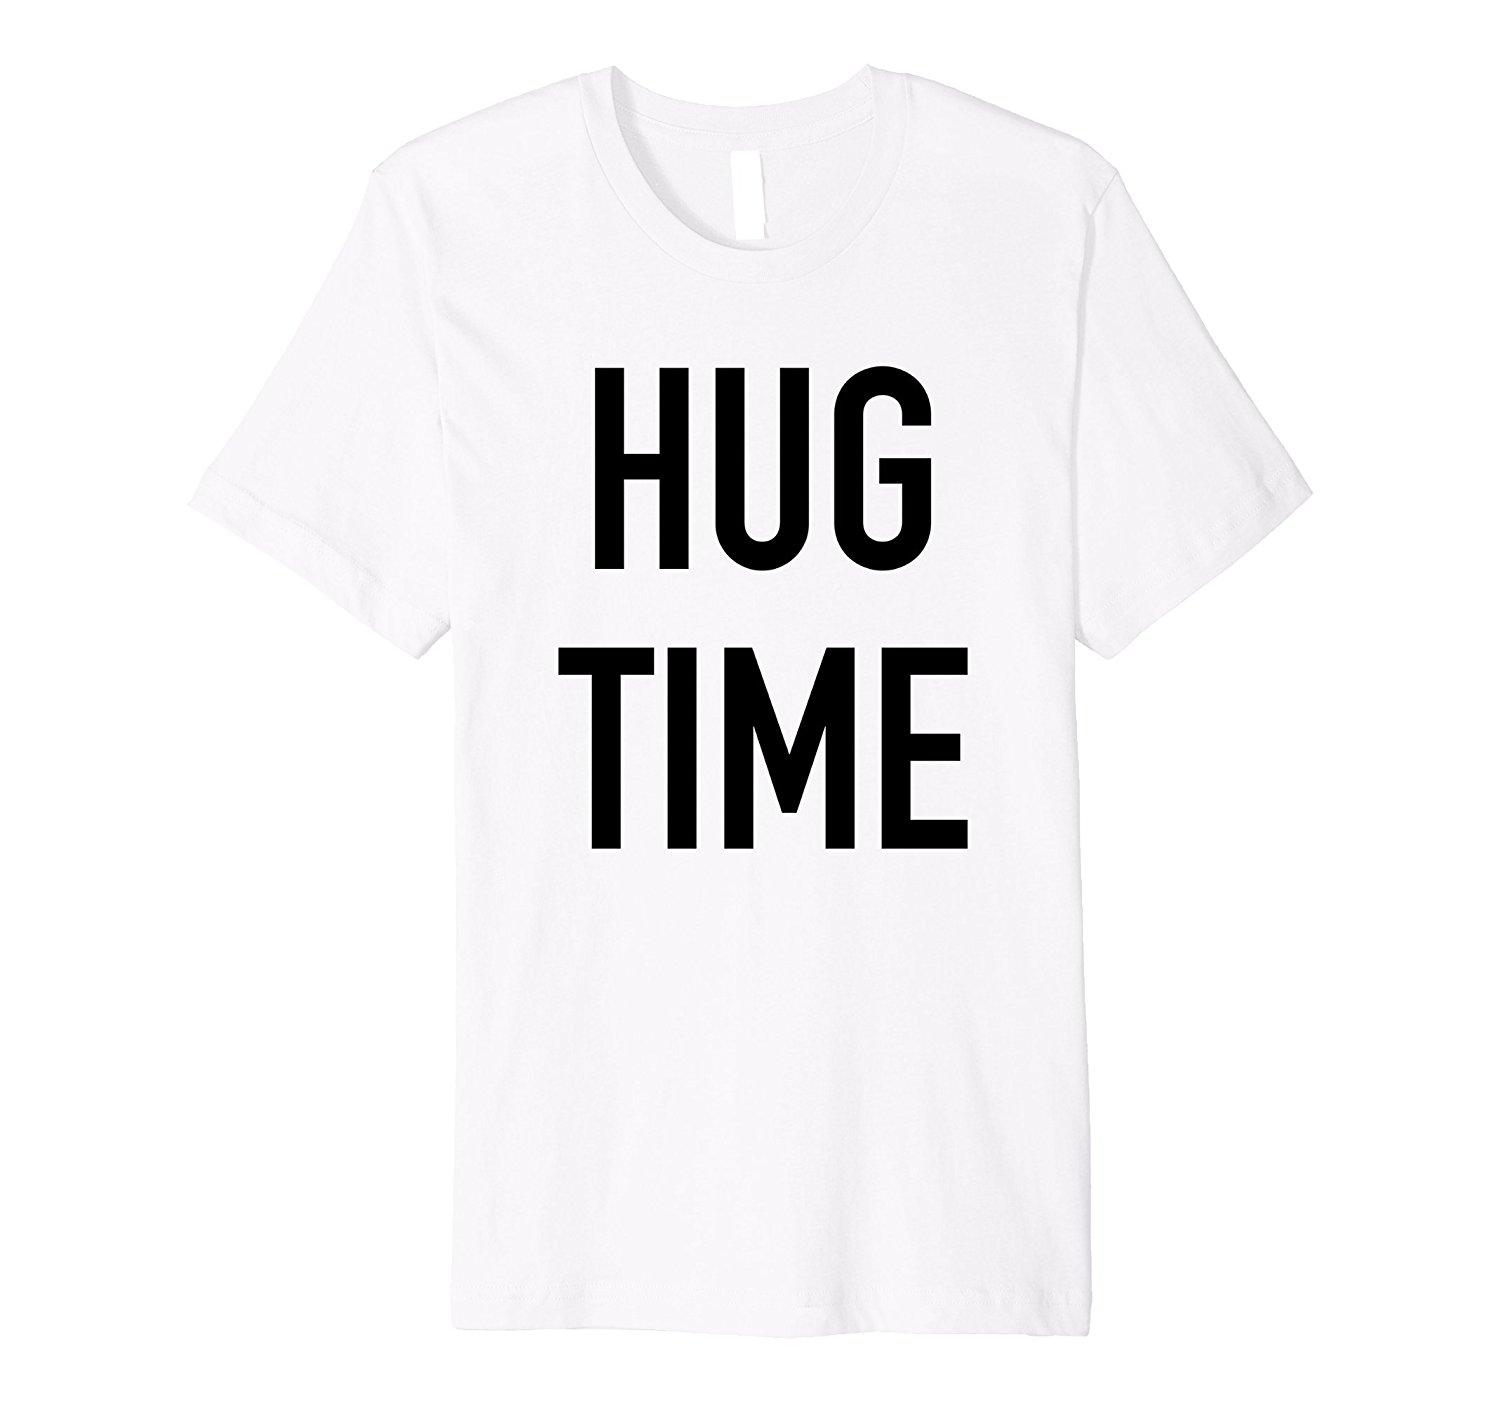 0cfd4d437 Hug Time Funny Fun Loving Quote T Shirt T Shirts Casual Short Sleeve For Men  Clothing Summer Mens Short Sleeve Tees T Tee Shirts T Shirt Shirts From ...